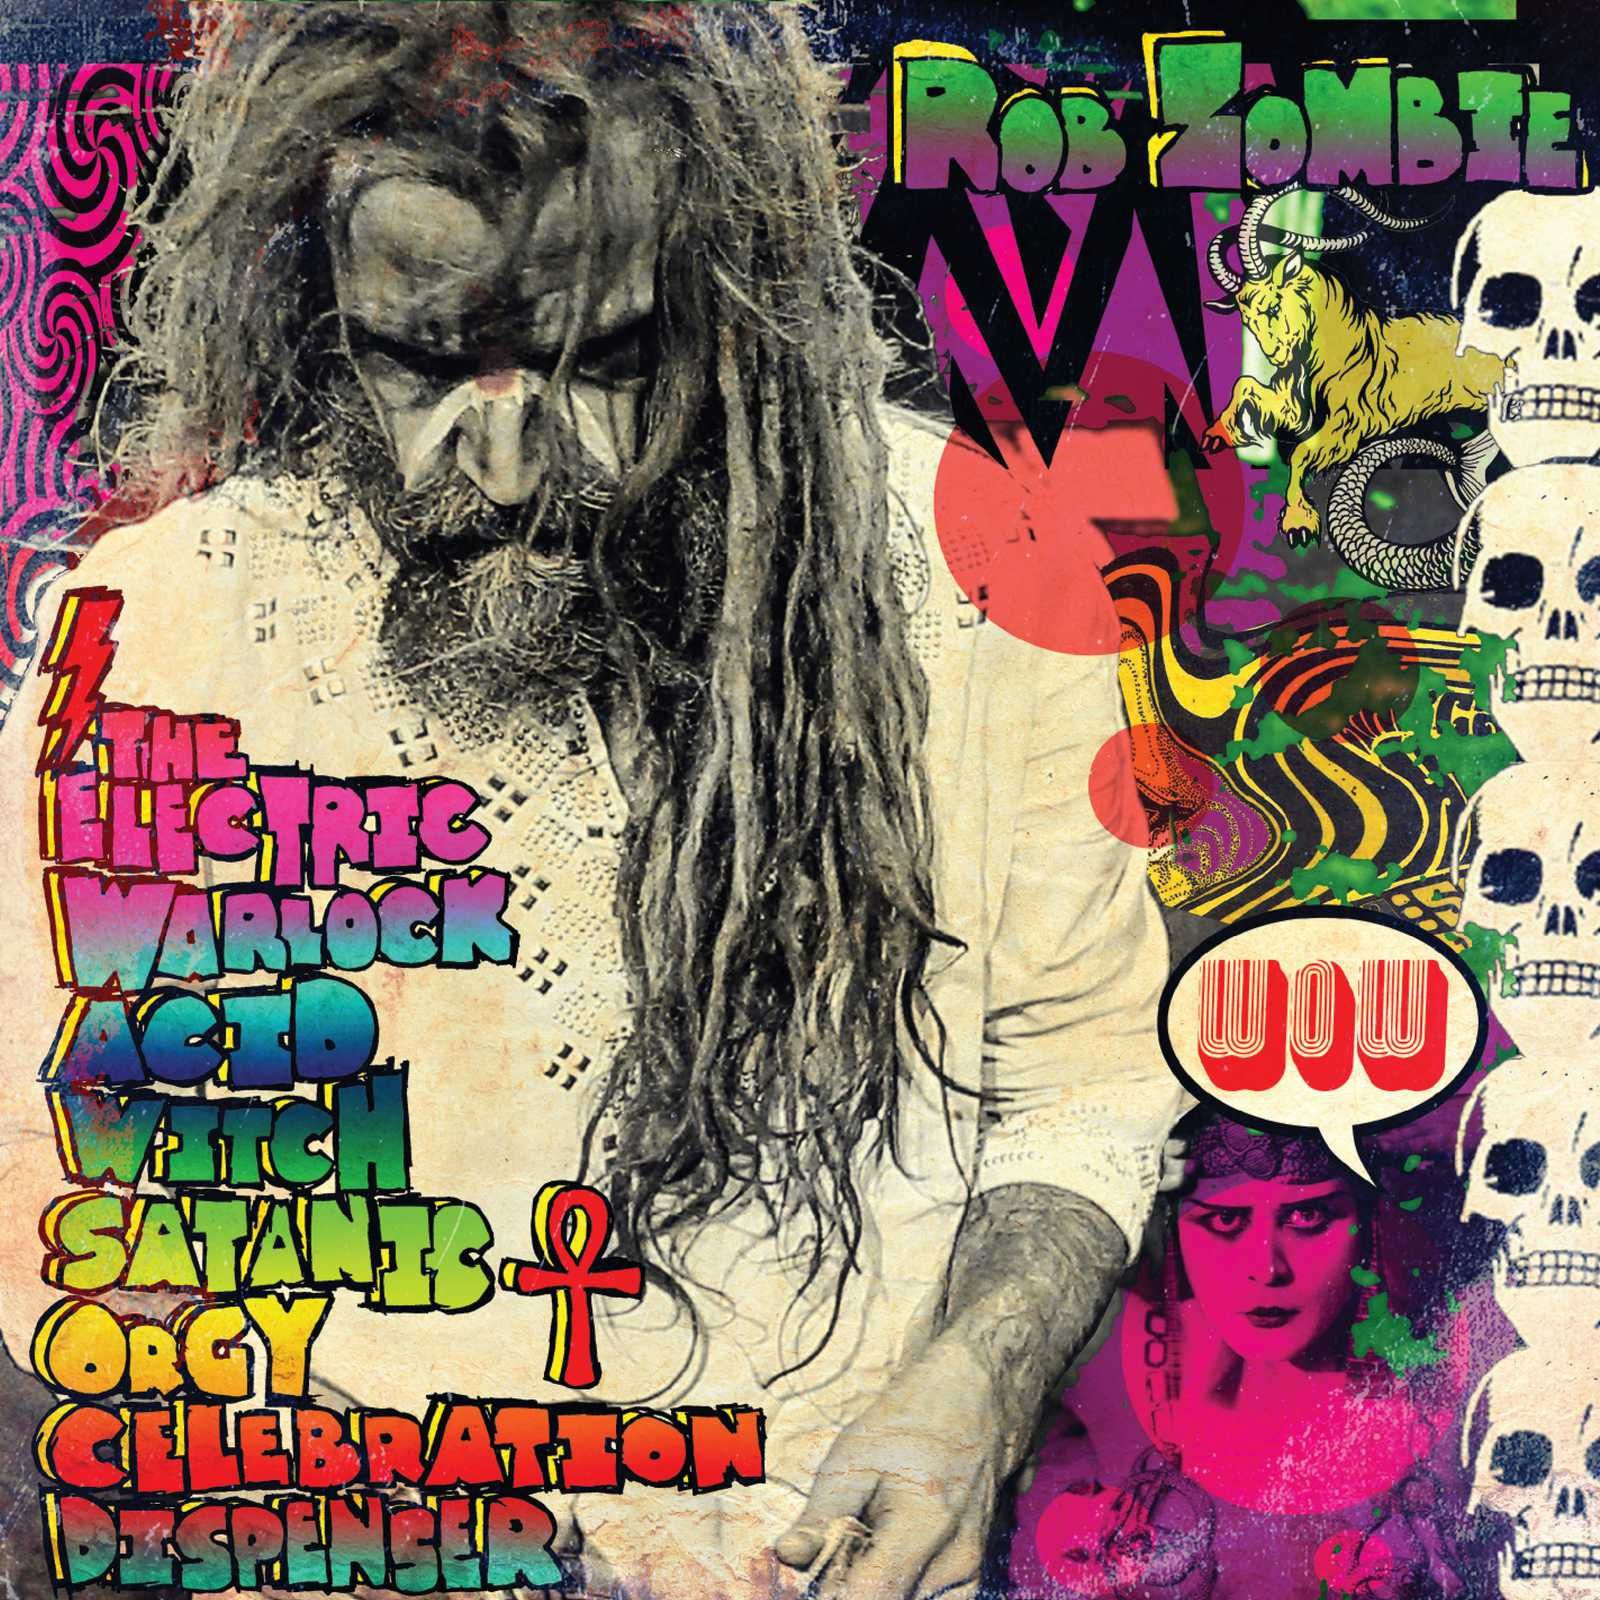 """CD review ROB ZOMBIE """"The Electric Warlock Acid Witch Satanic Orgy Celebration Dispenser"""""""